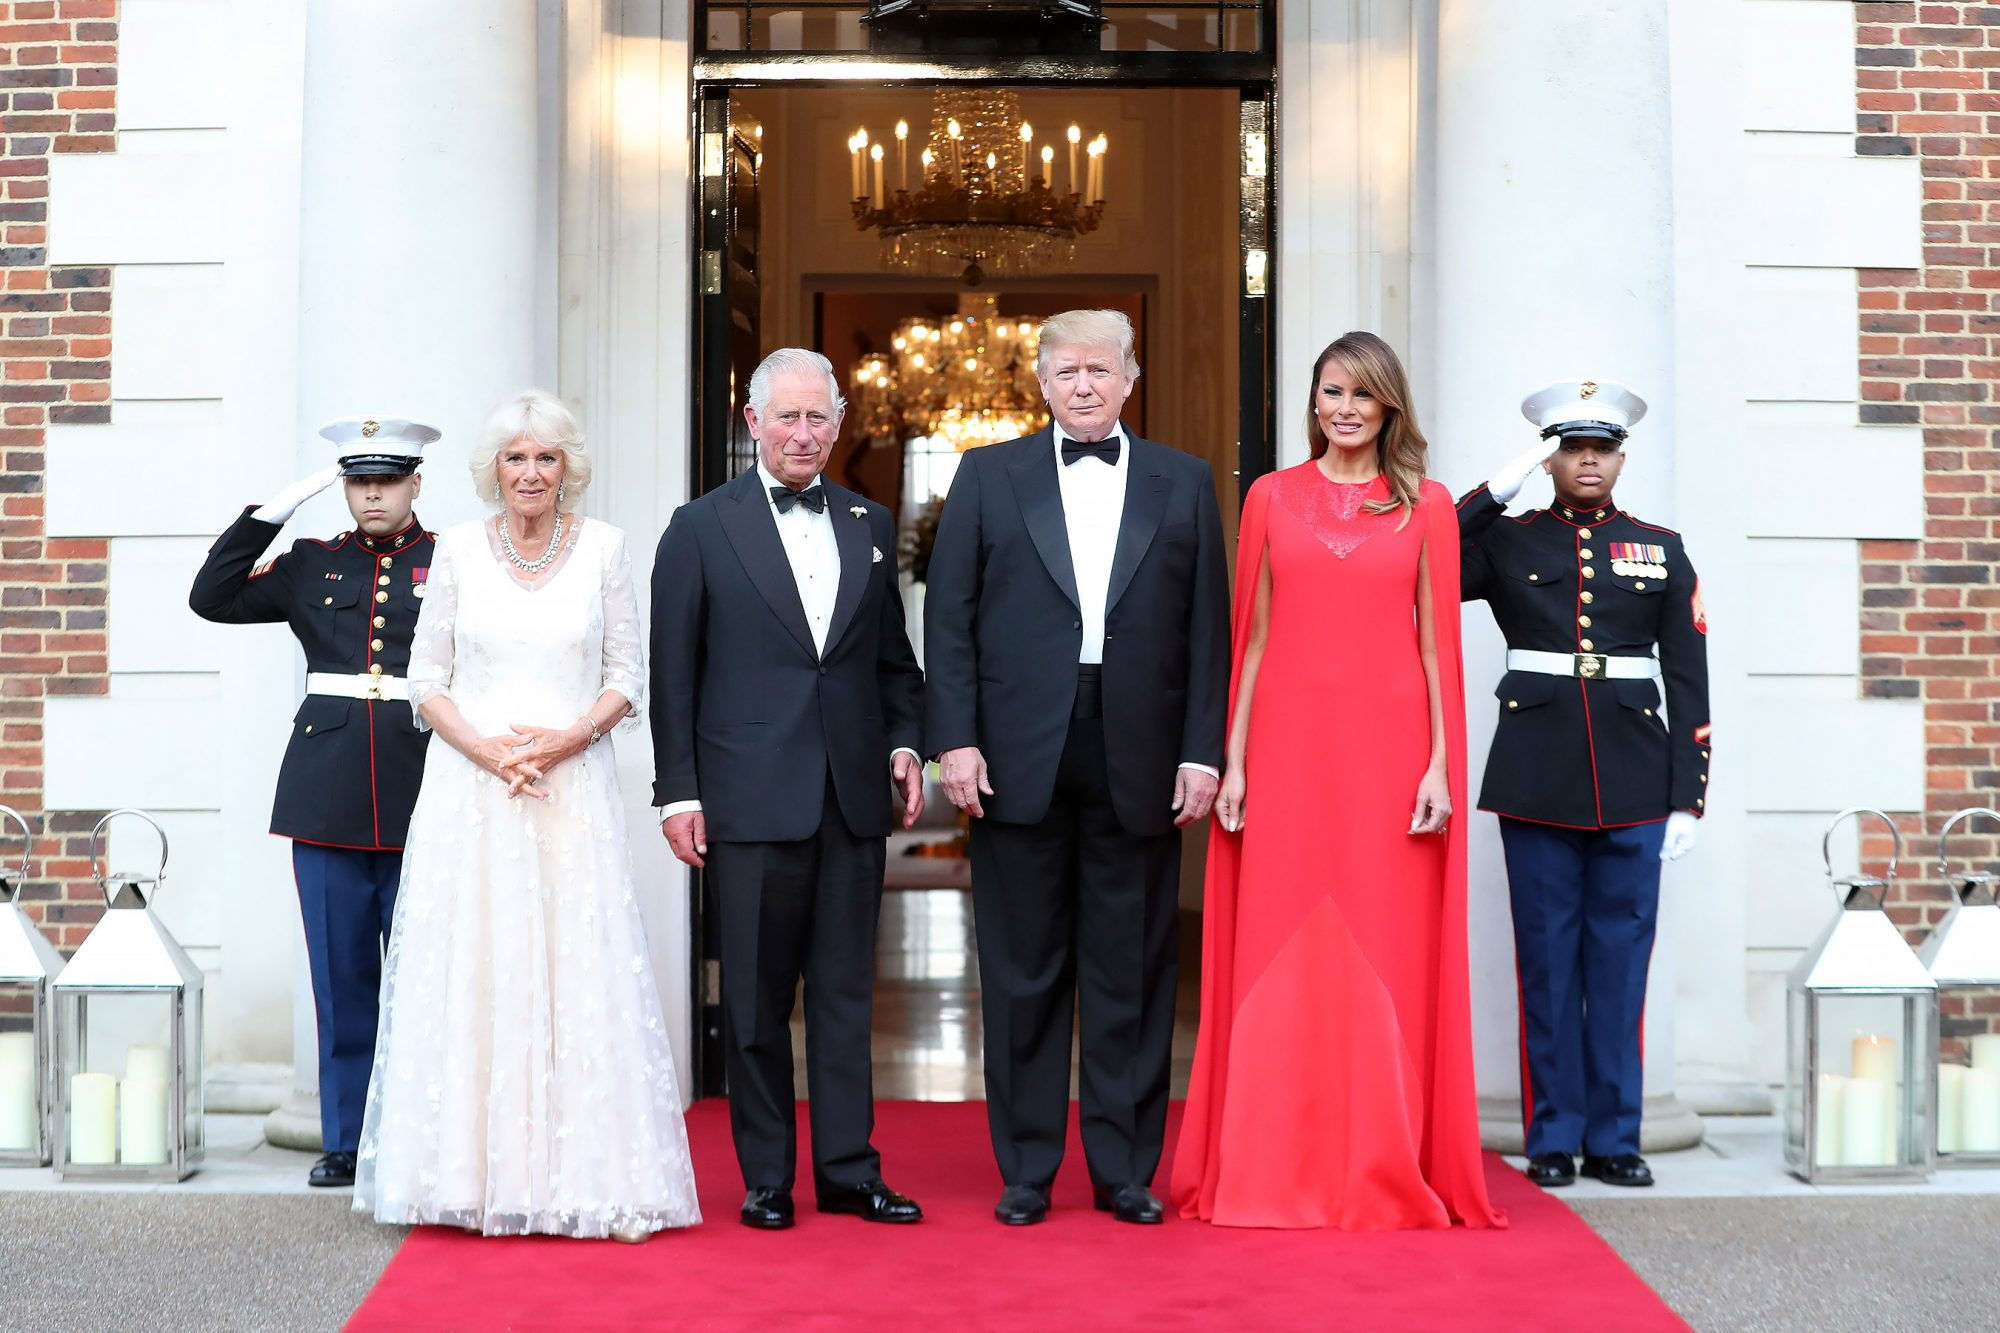 President Donald Trump and First Lady Melania Trump host a dinner at Winfield House for Prince Charles, Prince of Wales and Camilla, Duchess of Cornwall